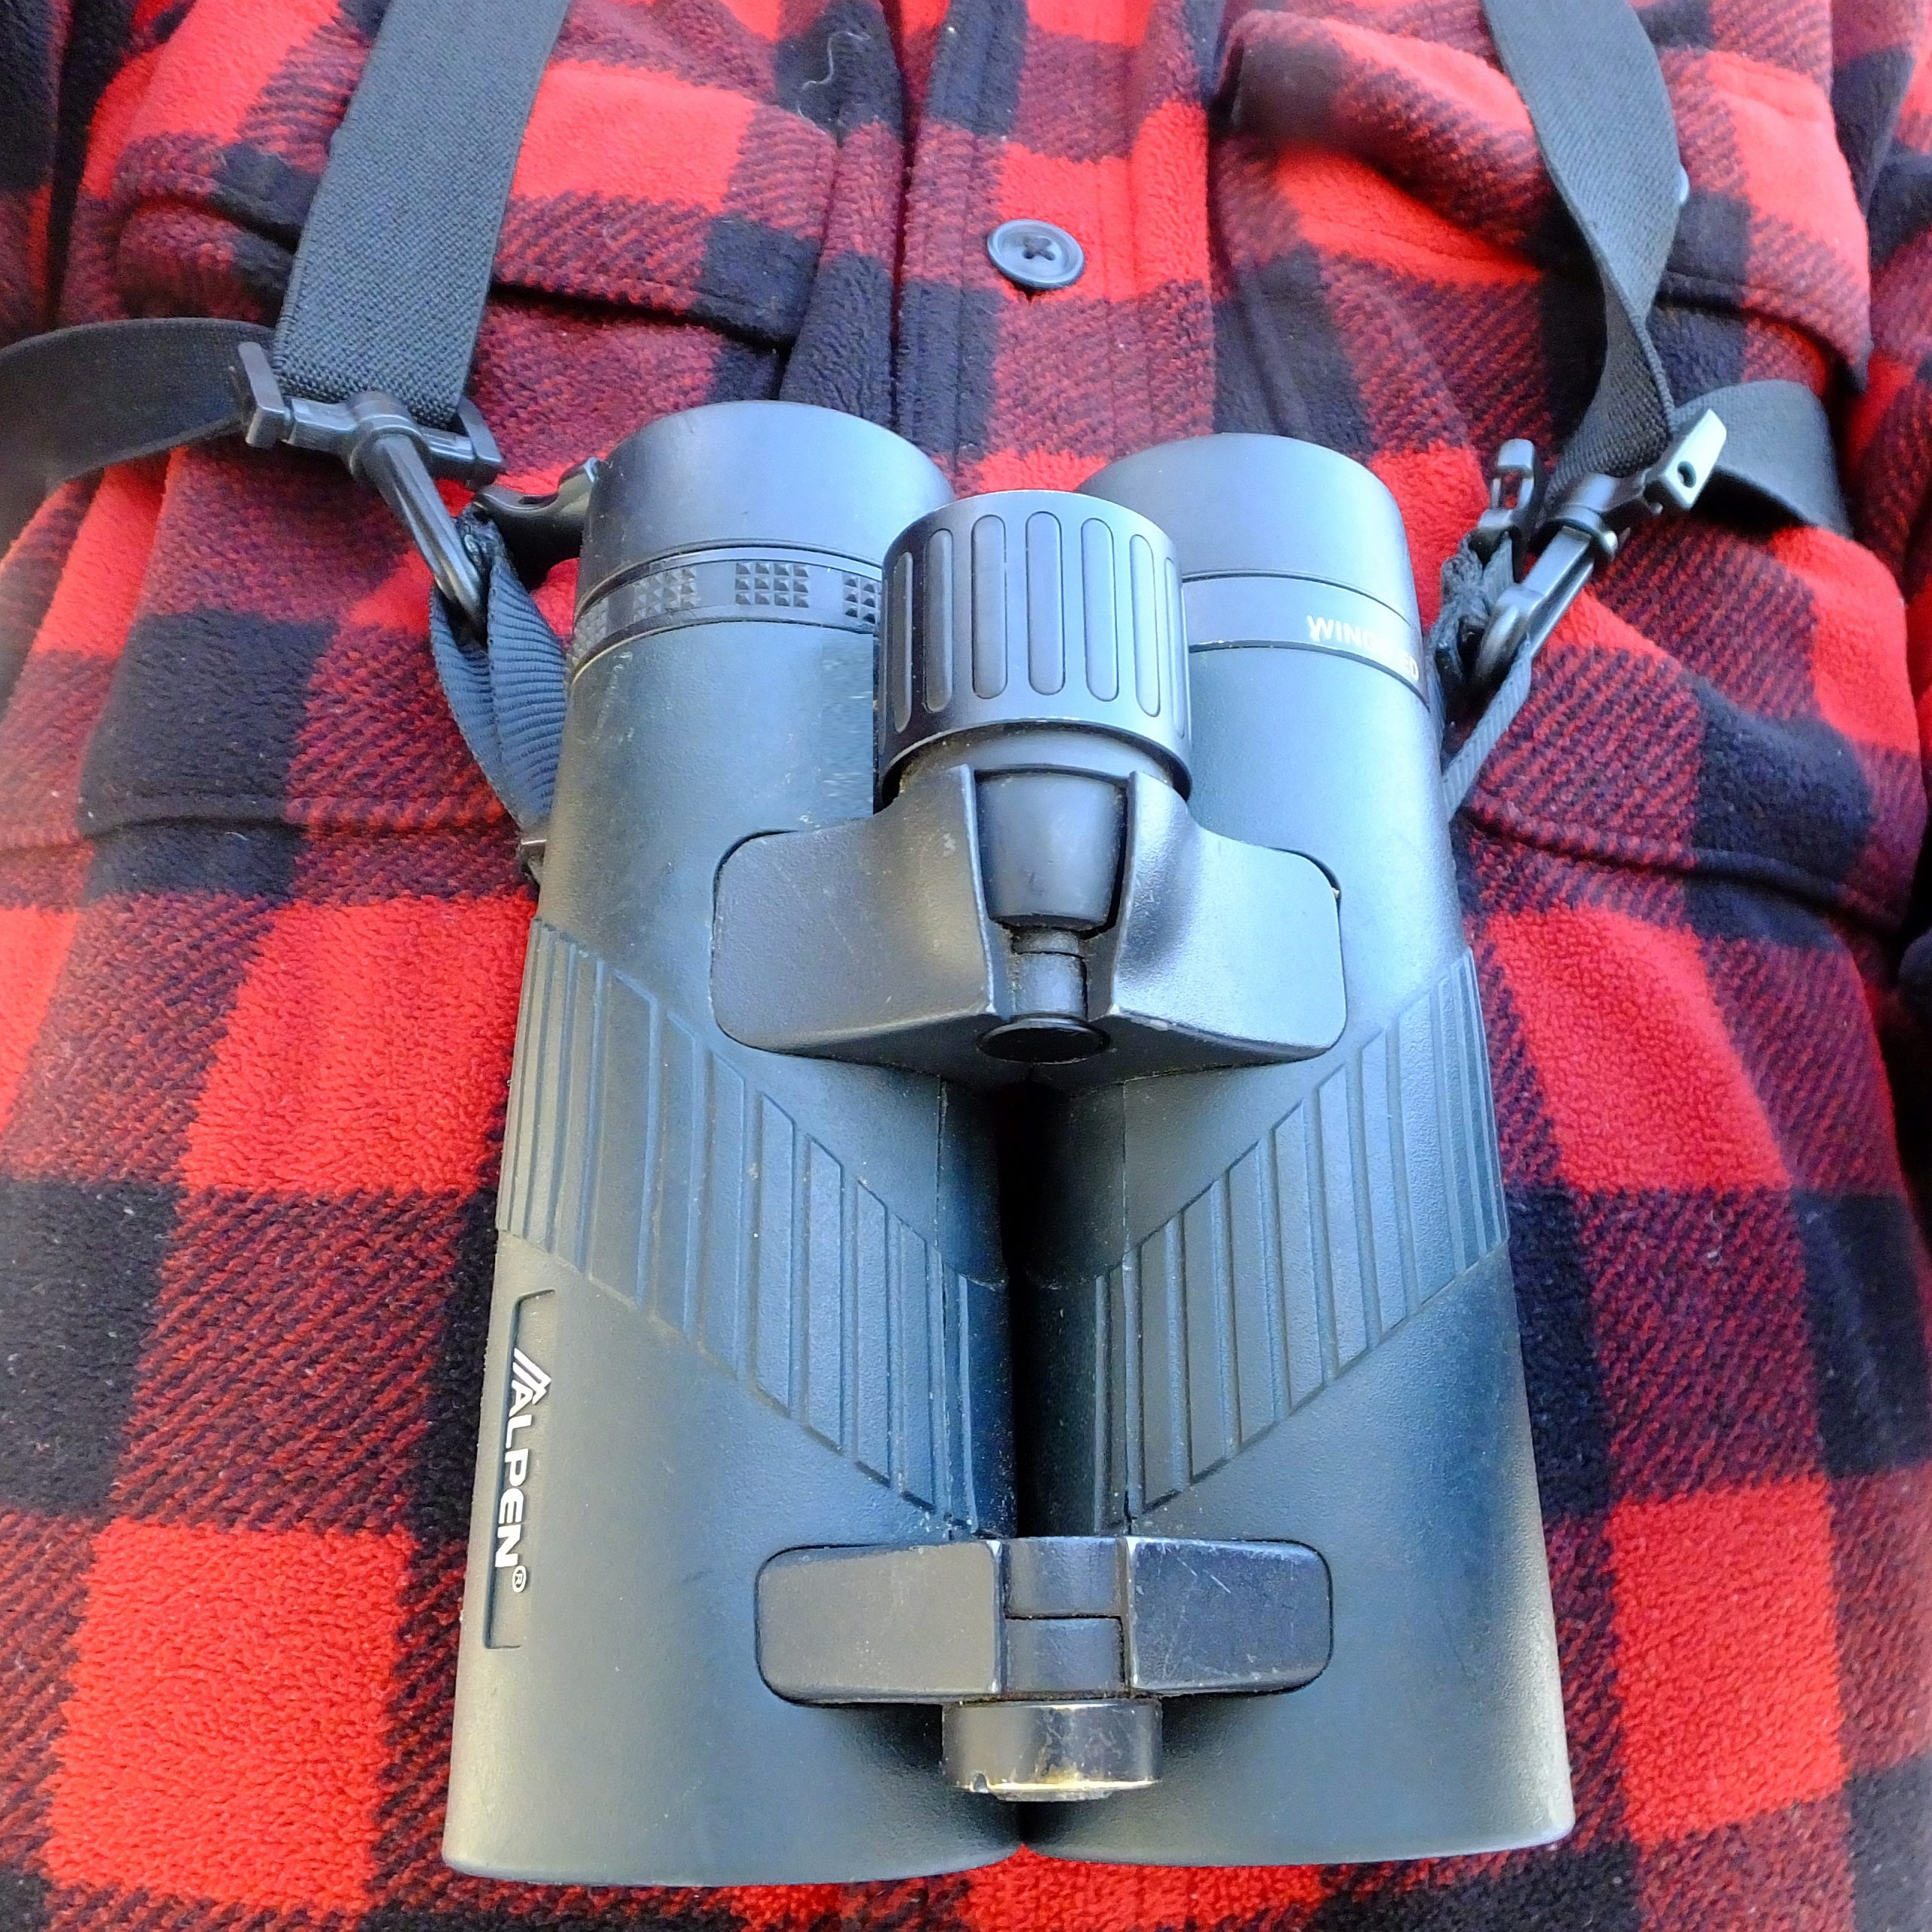 A shoulder harness for your binoculars keeps them from bouncing against your chest and makes them easy to carry.